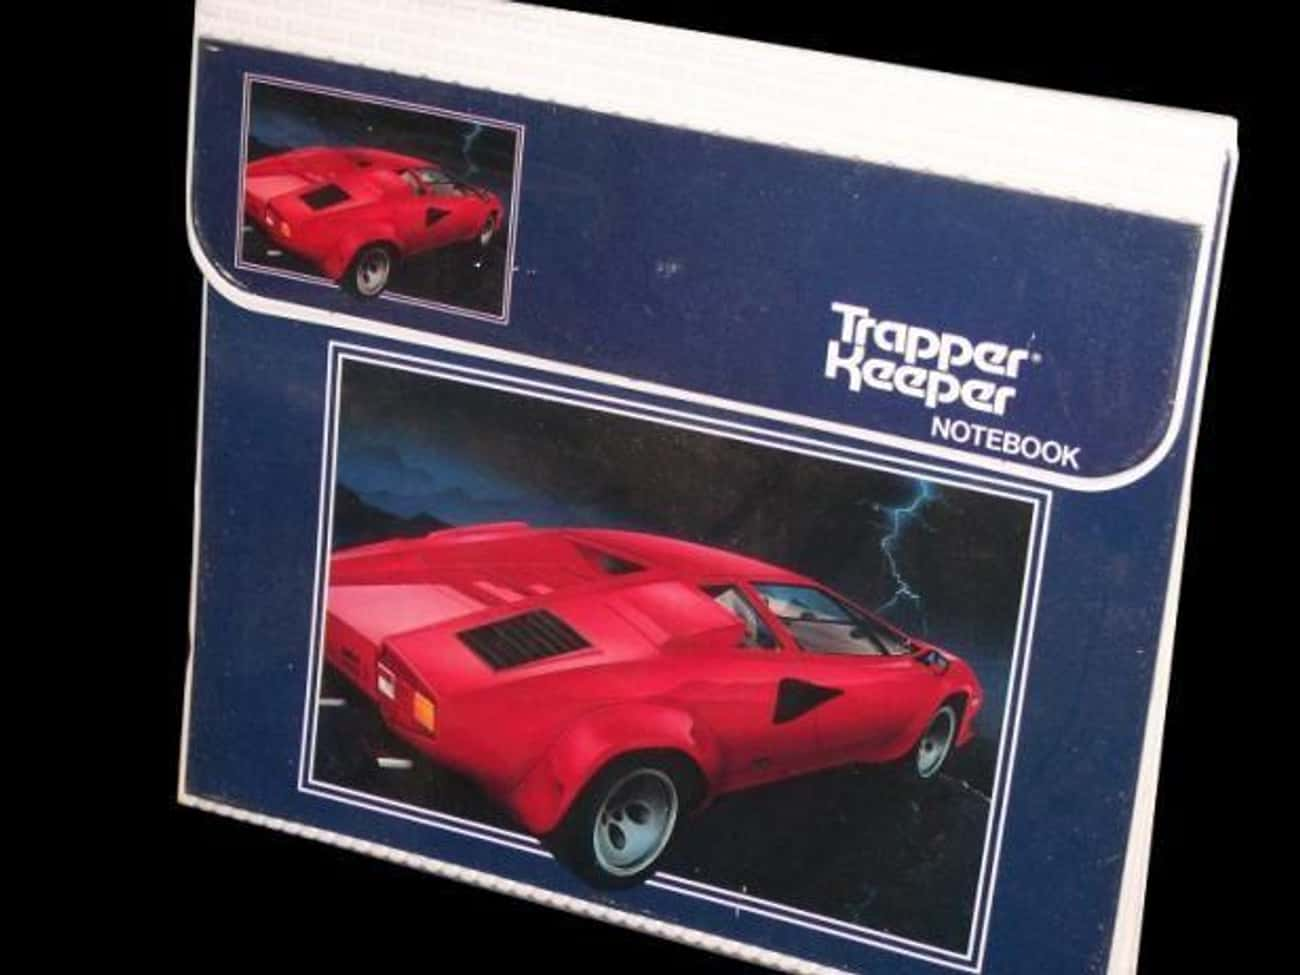 They Were Immediately Successf is listed (or ranked) 3 on the list What The Heck Happened To Trapper Keepers?